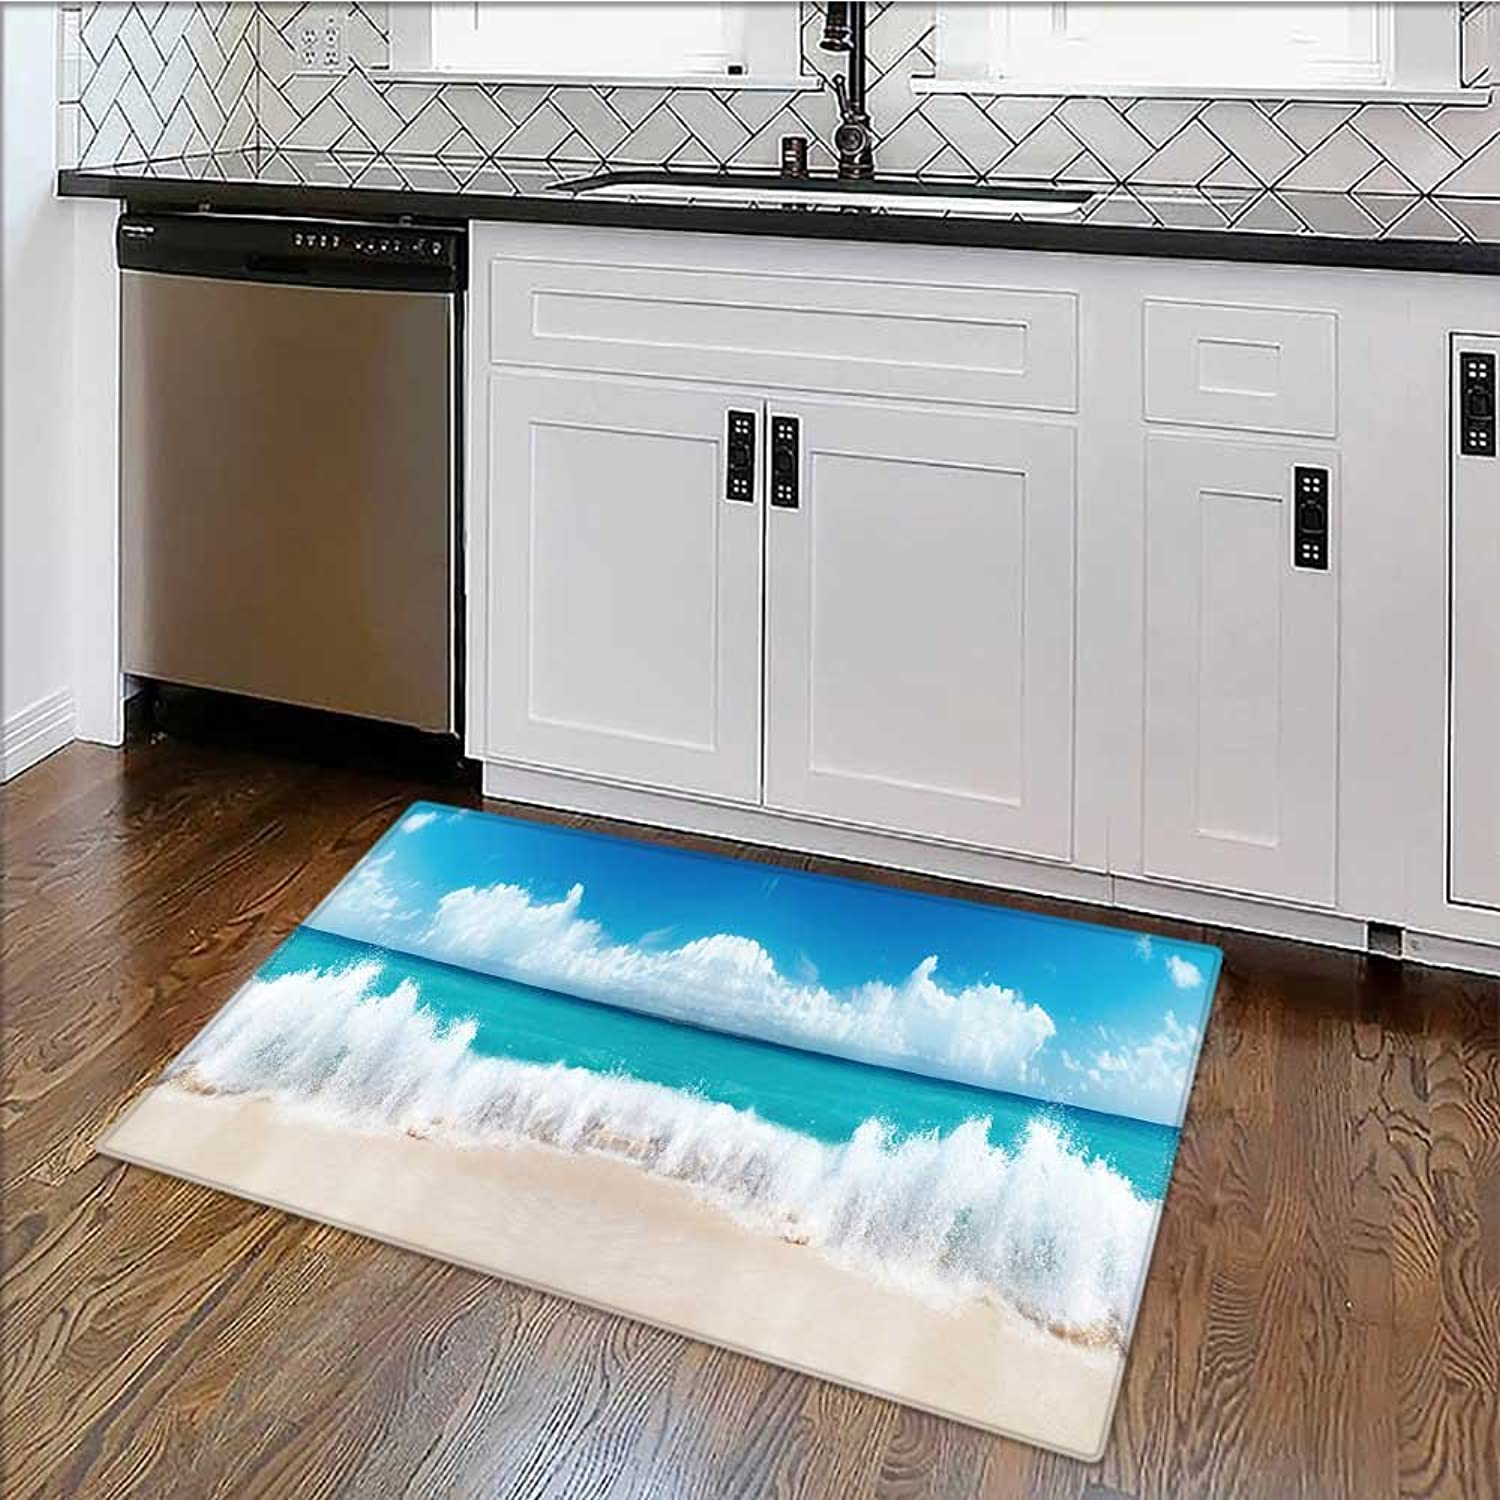 Printed Floor mat The sea Coast in a Panoramic for Home and Office W39 x H20